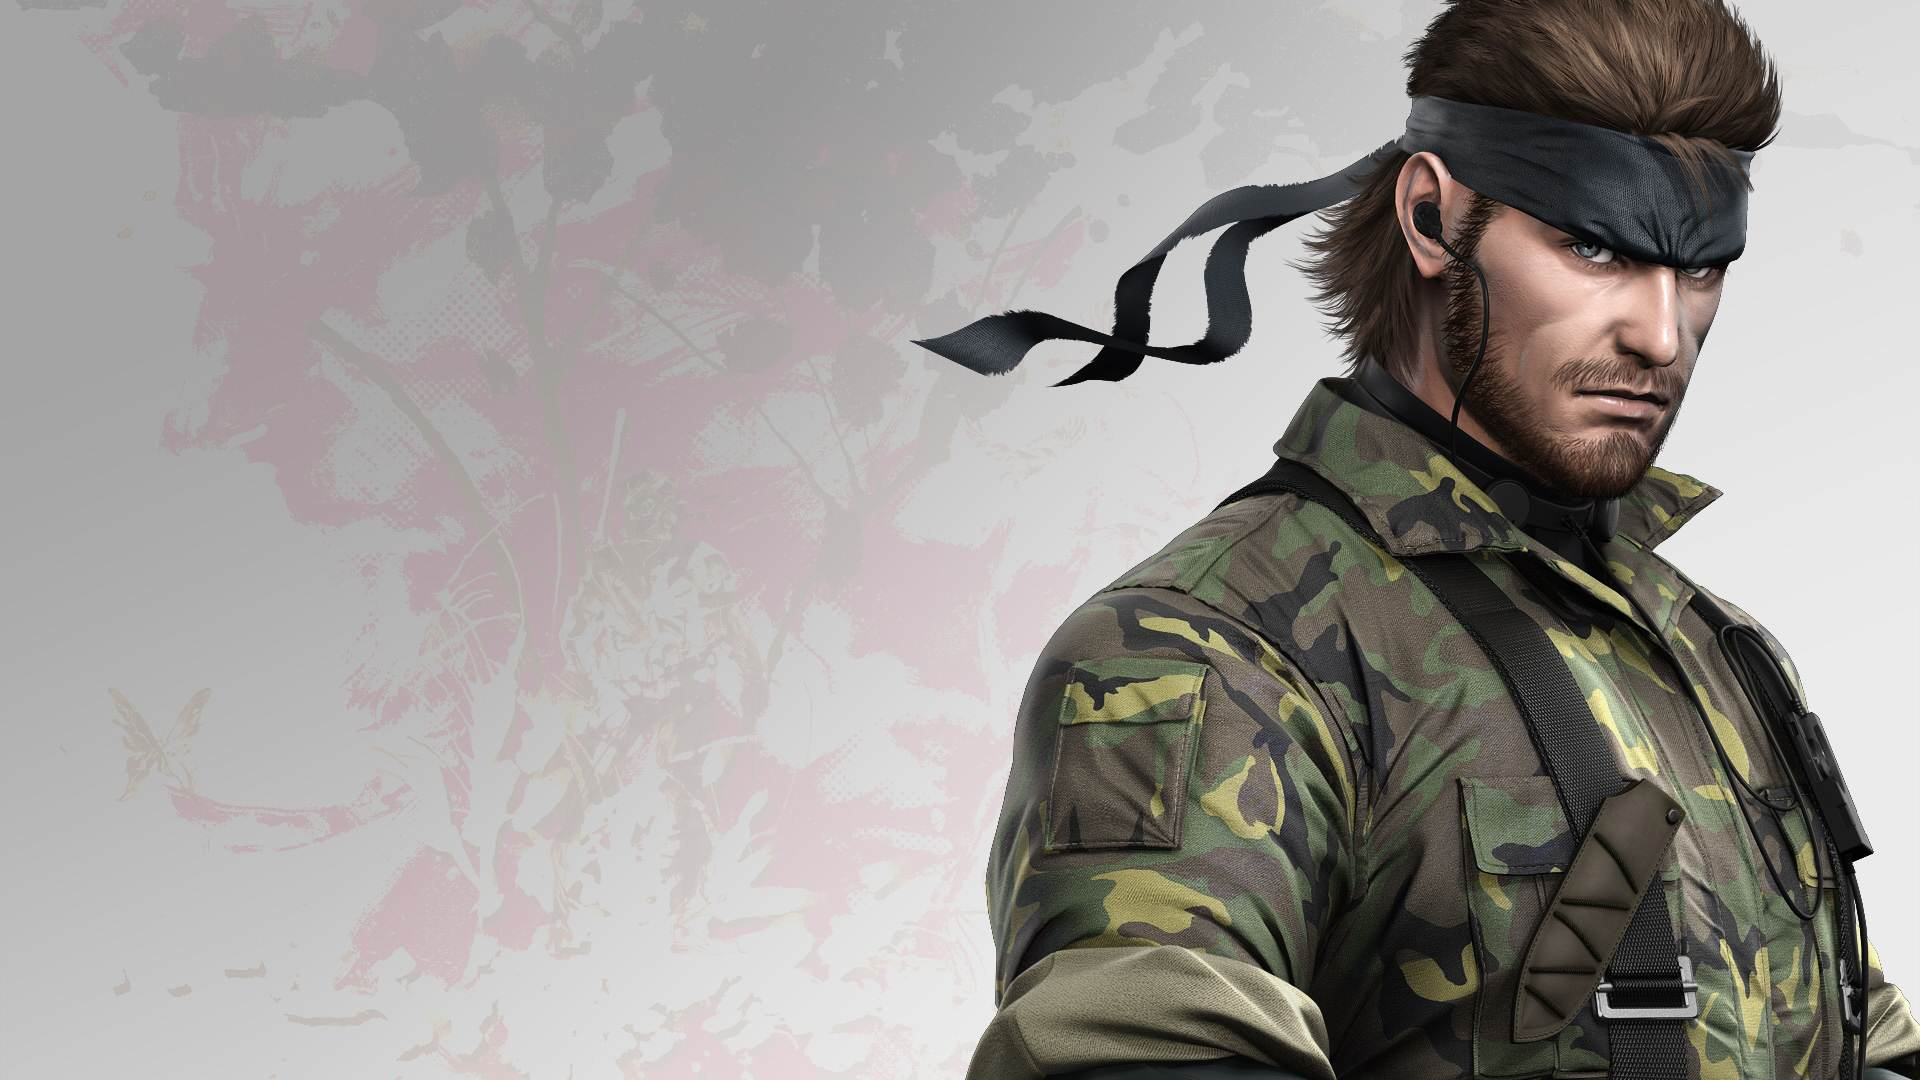 mgs snake  Iconic Metal Gear Solid Voice Actor Has No Love For Hideo Kojima